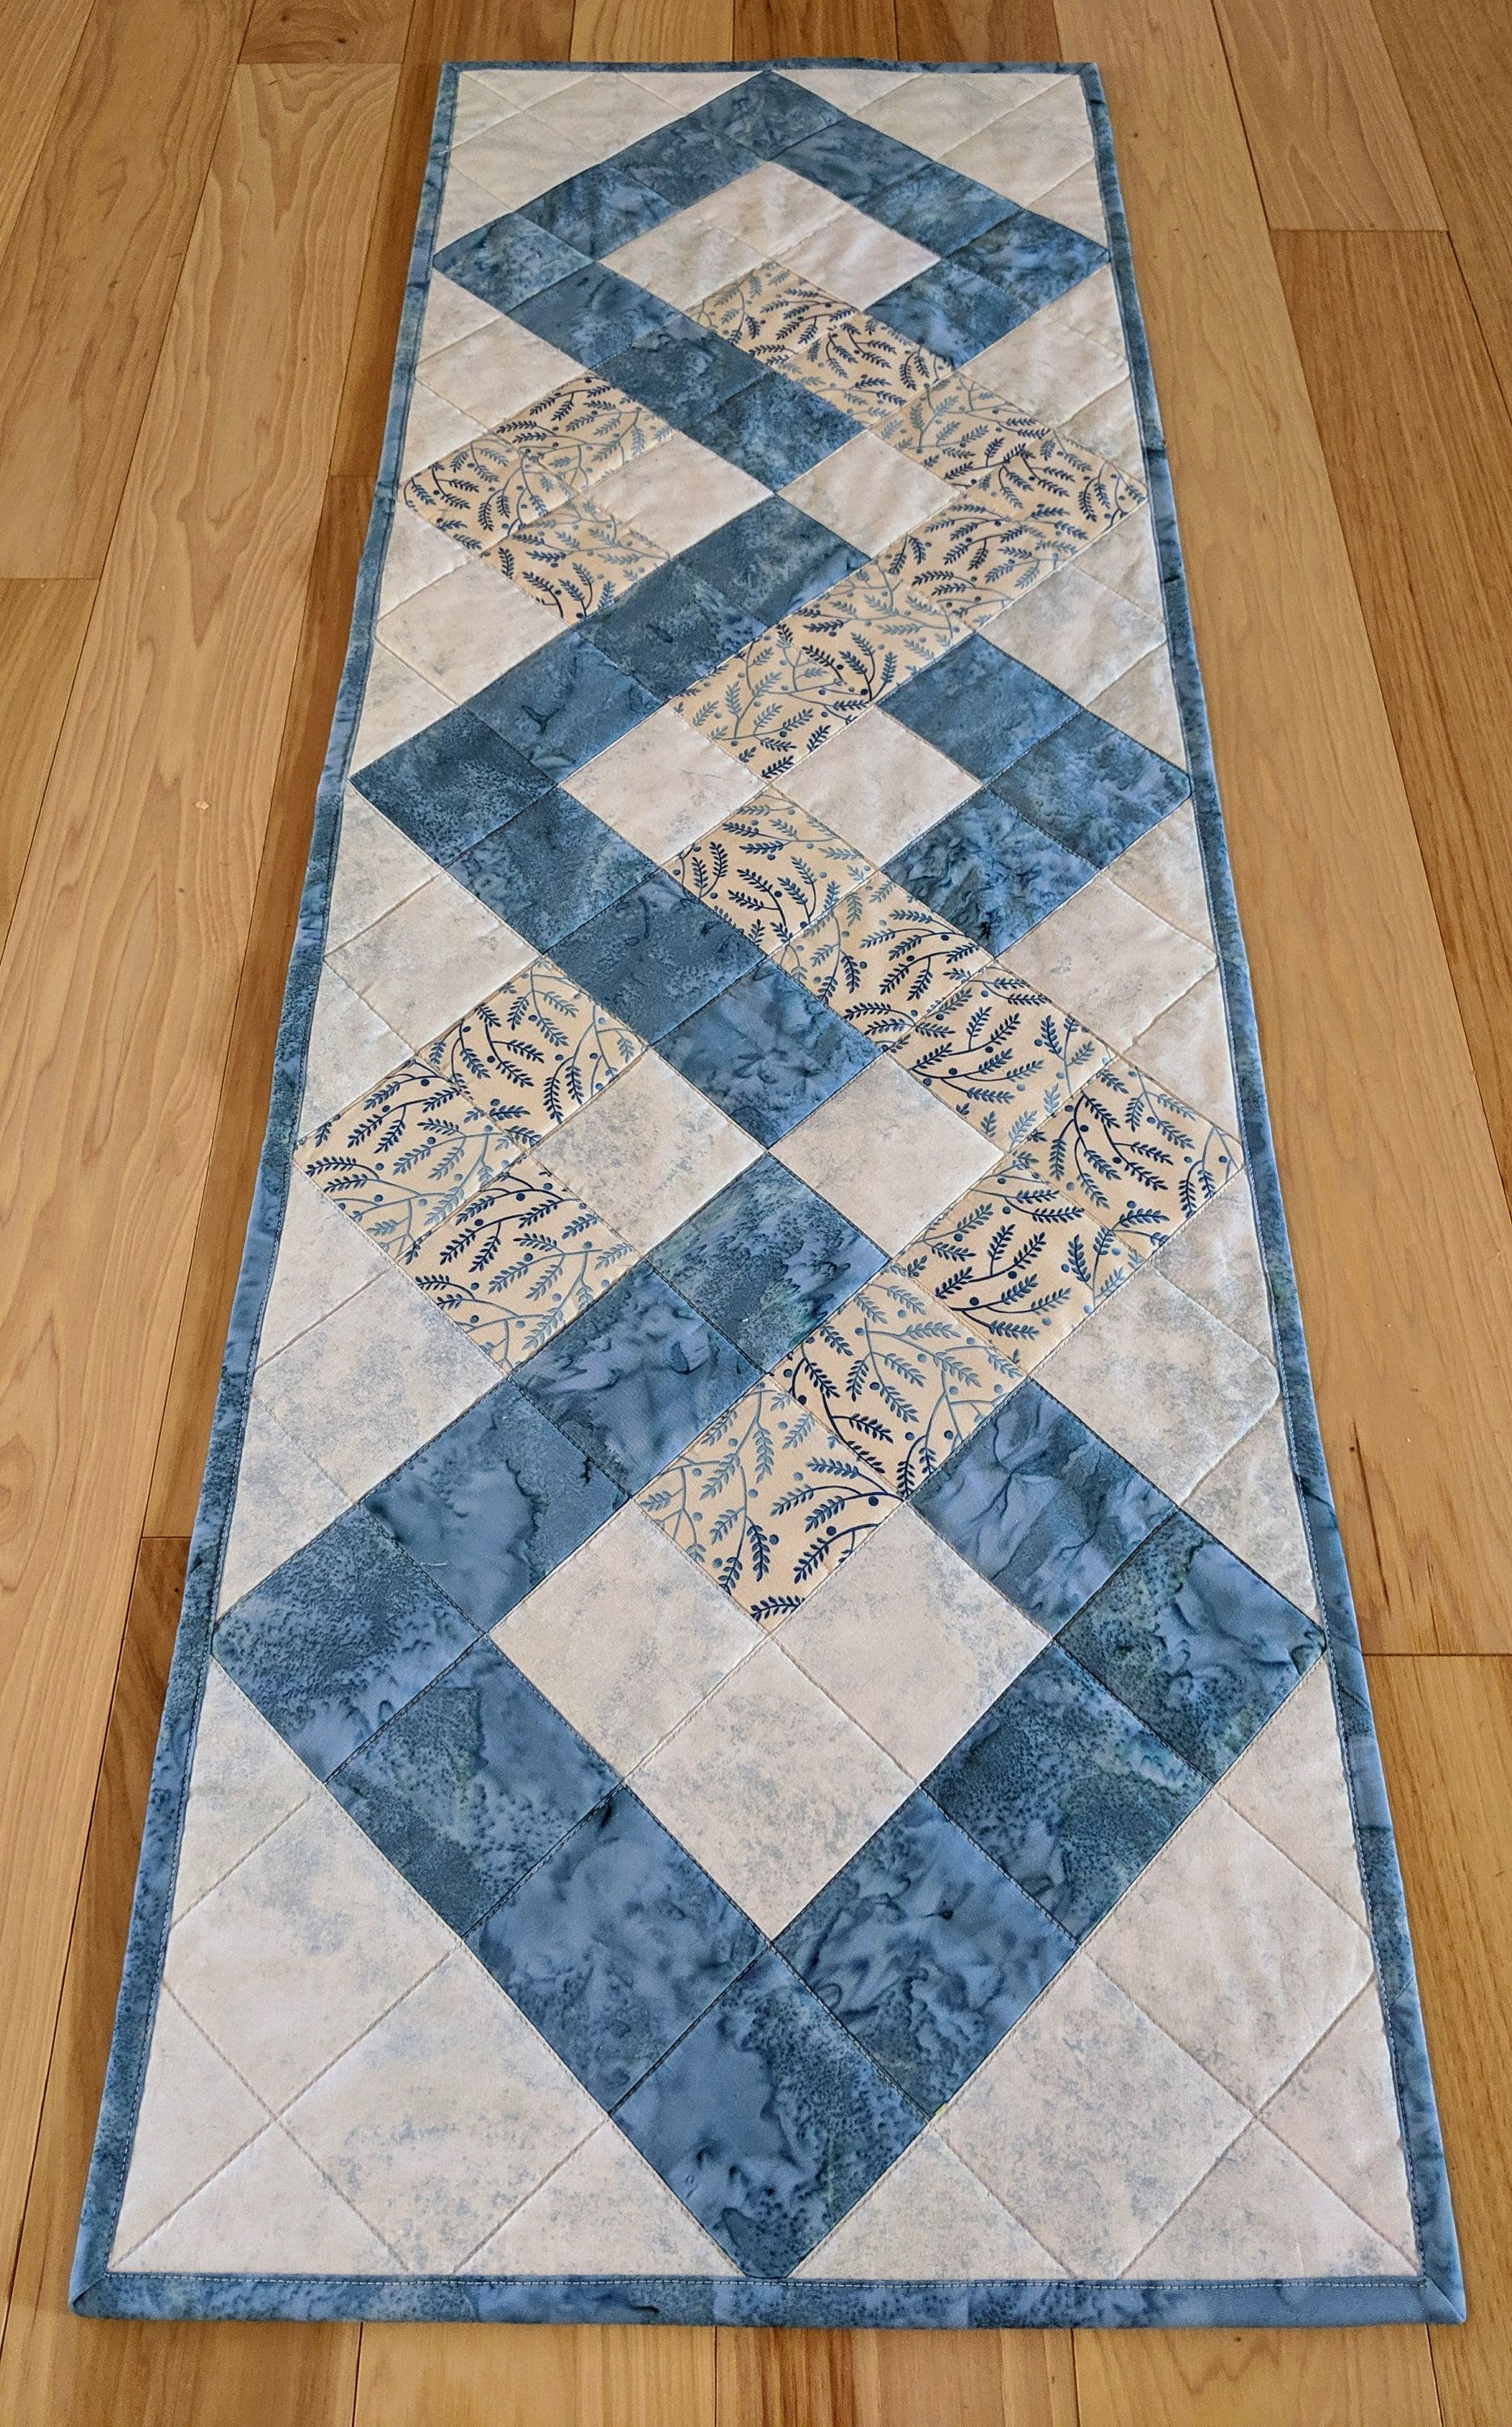 Quilted Table Runner Table Runner Teal And Cream Table Runner Inte Quilted Table Runners Christmas Quilted Table Runners Patterns Table Runner And Placemats